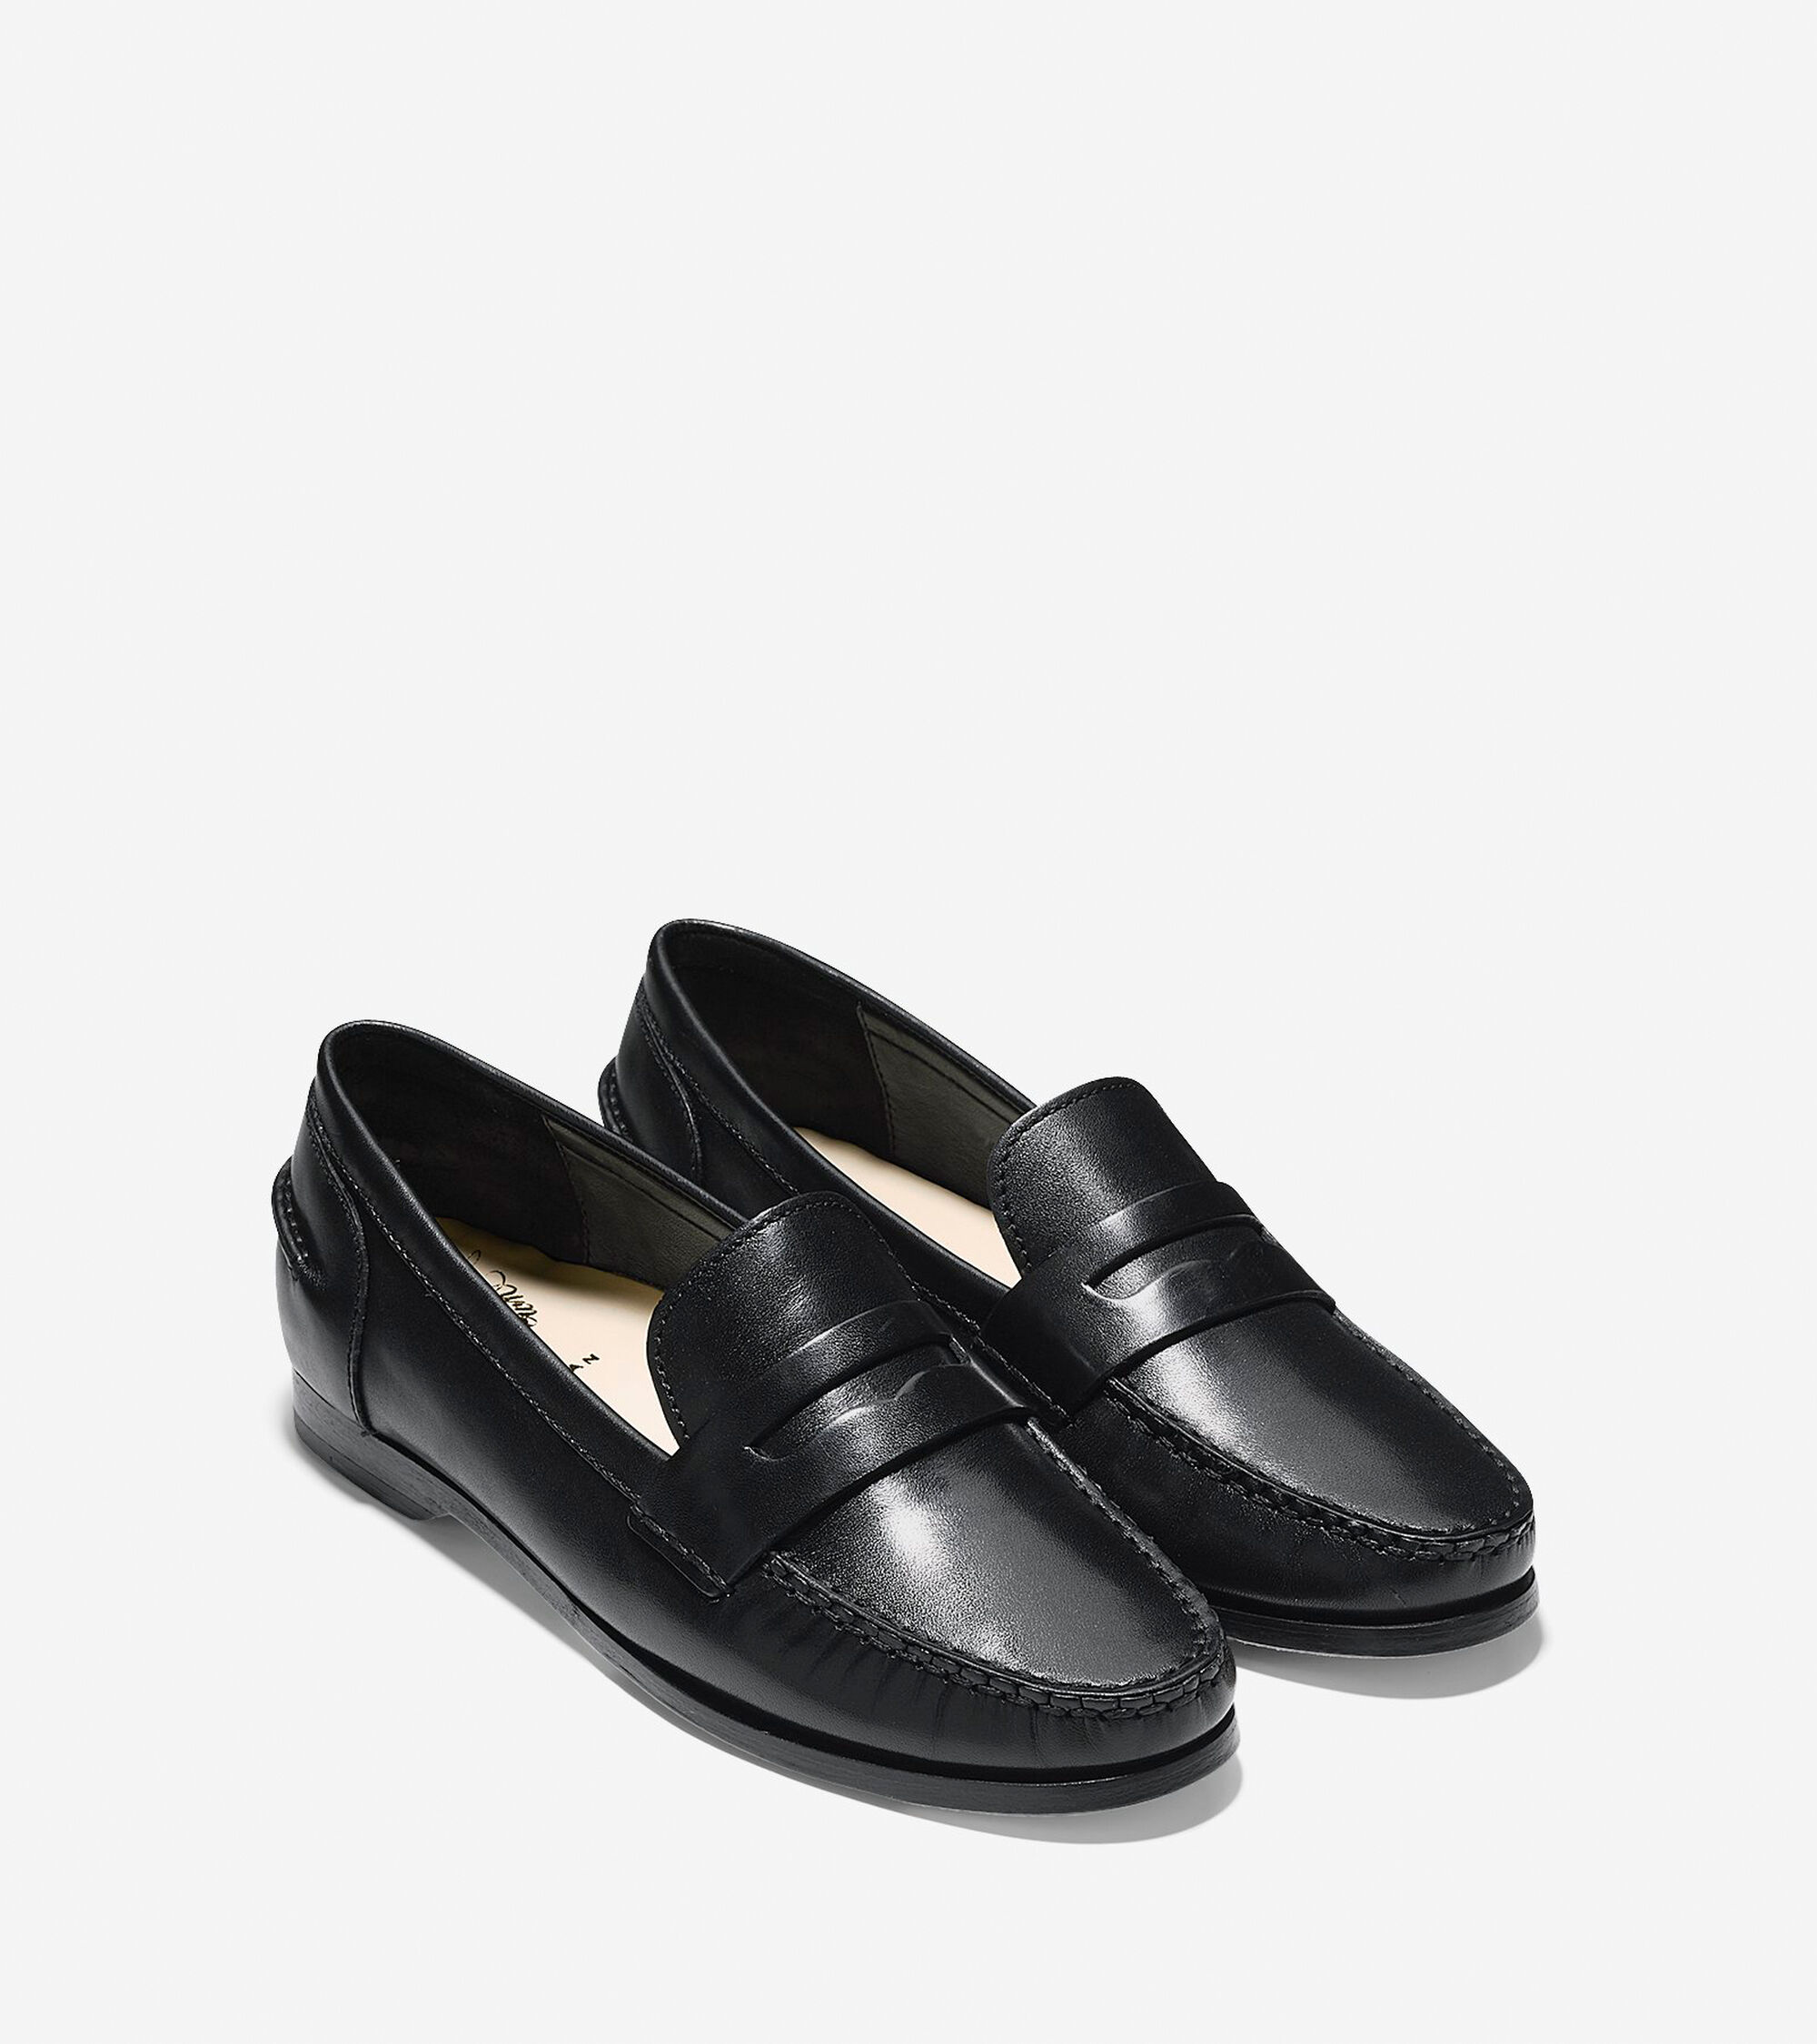 Women's Pinch Grand Penny Loafers in Black | Cole Haan